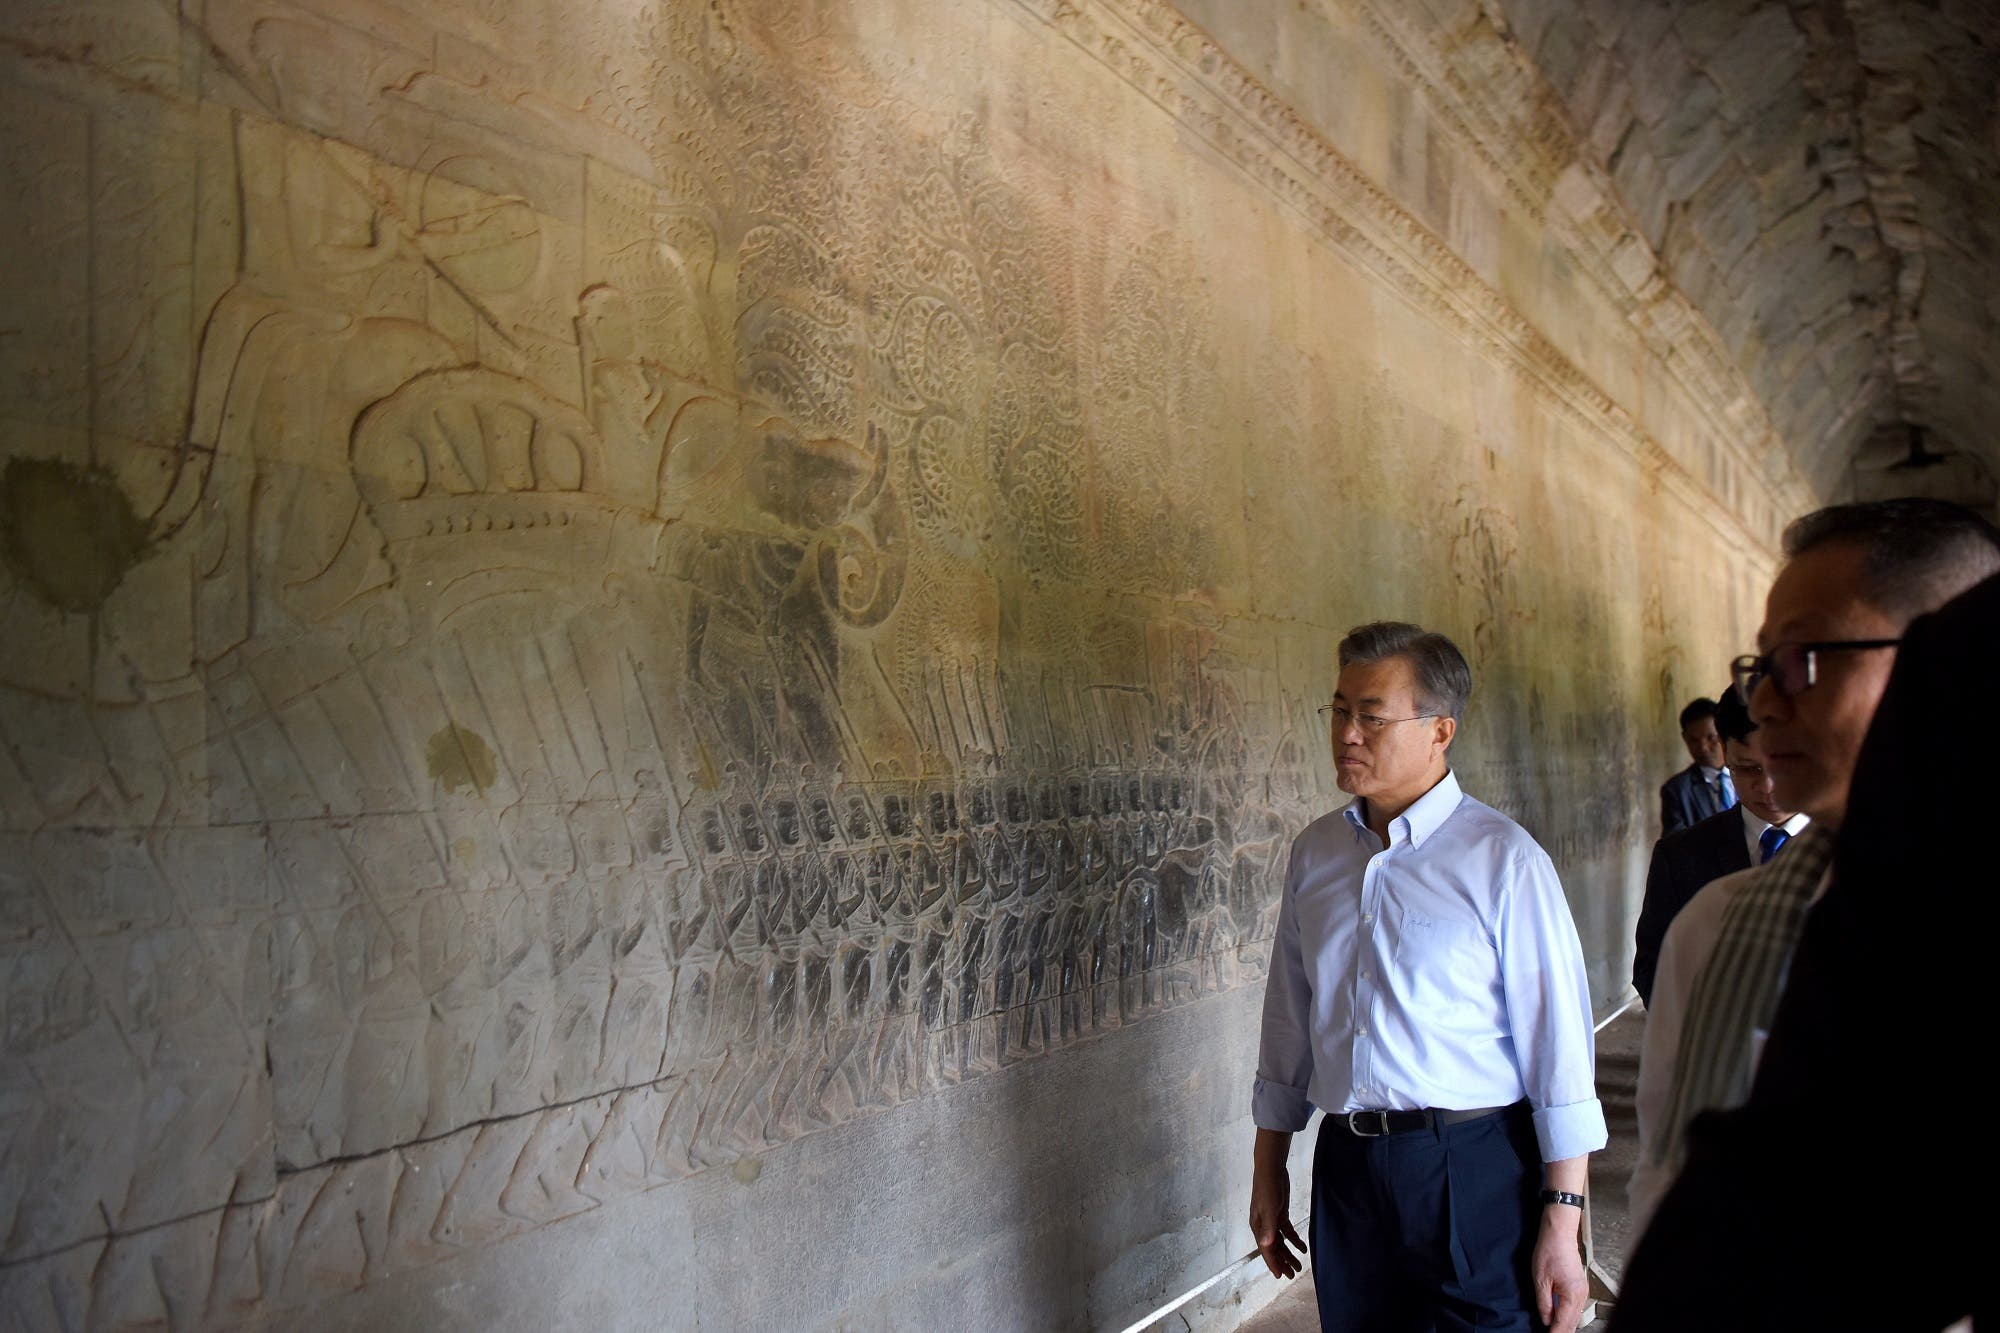 South Korea's President Moon Jae-in looks at a bas-relief on a wall during his visit to the Angkor Wat temple on March 16, 2019. (AFP)